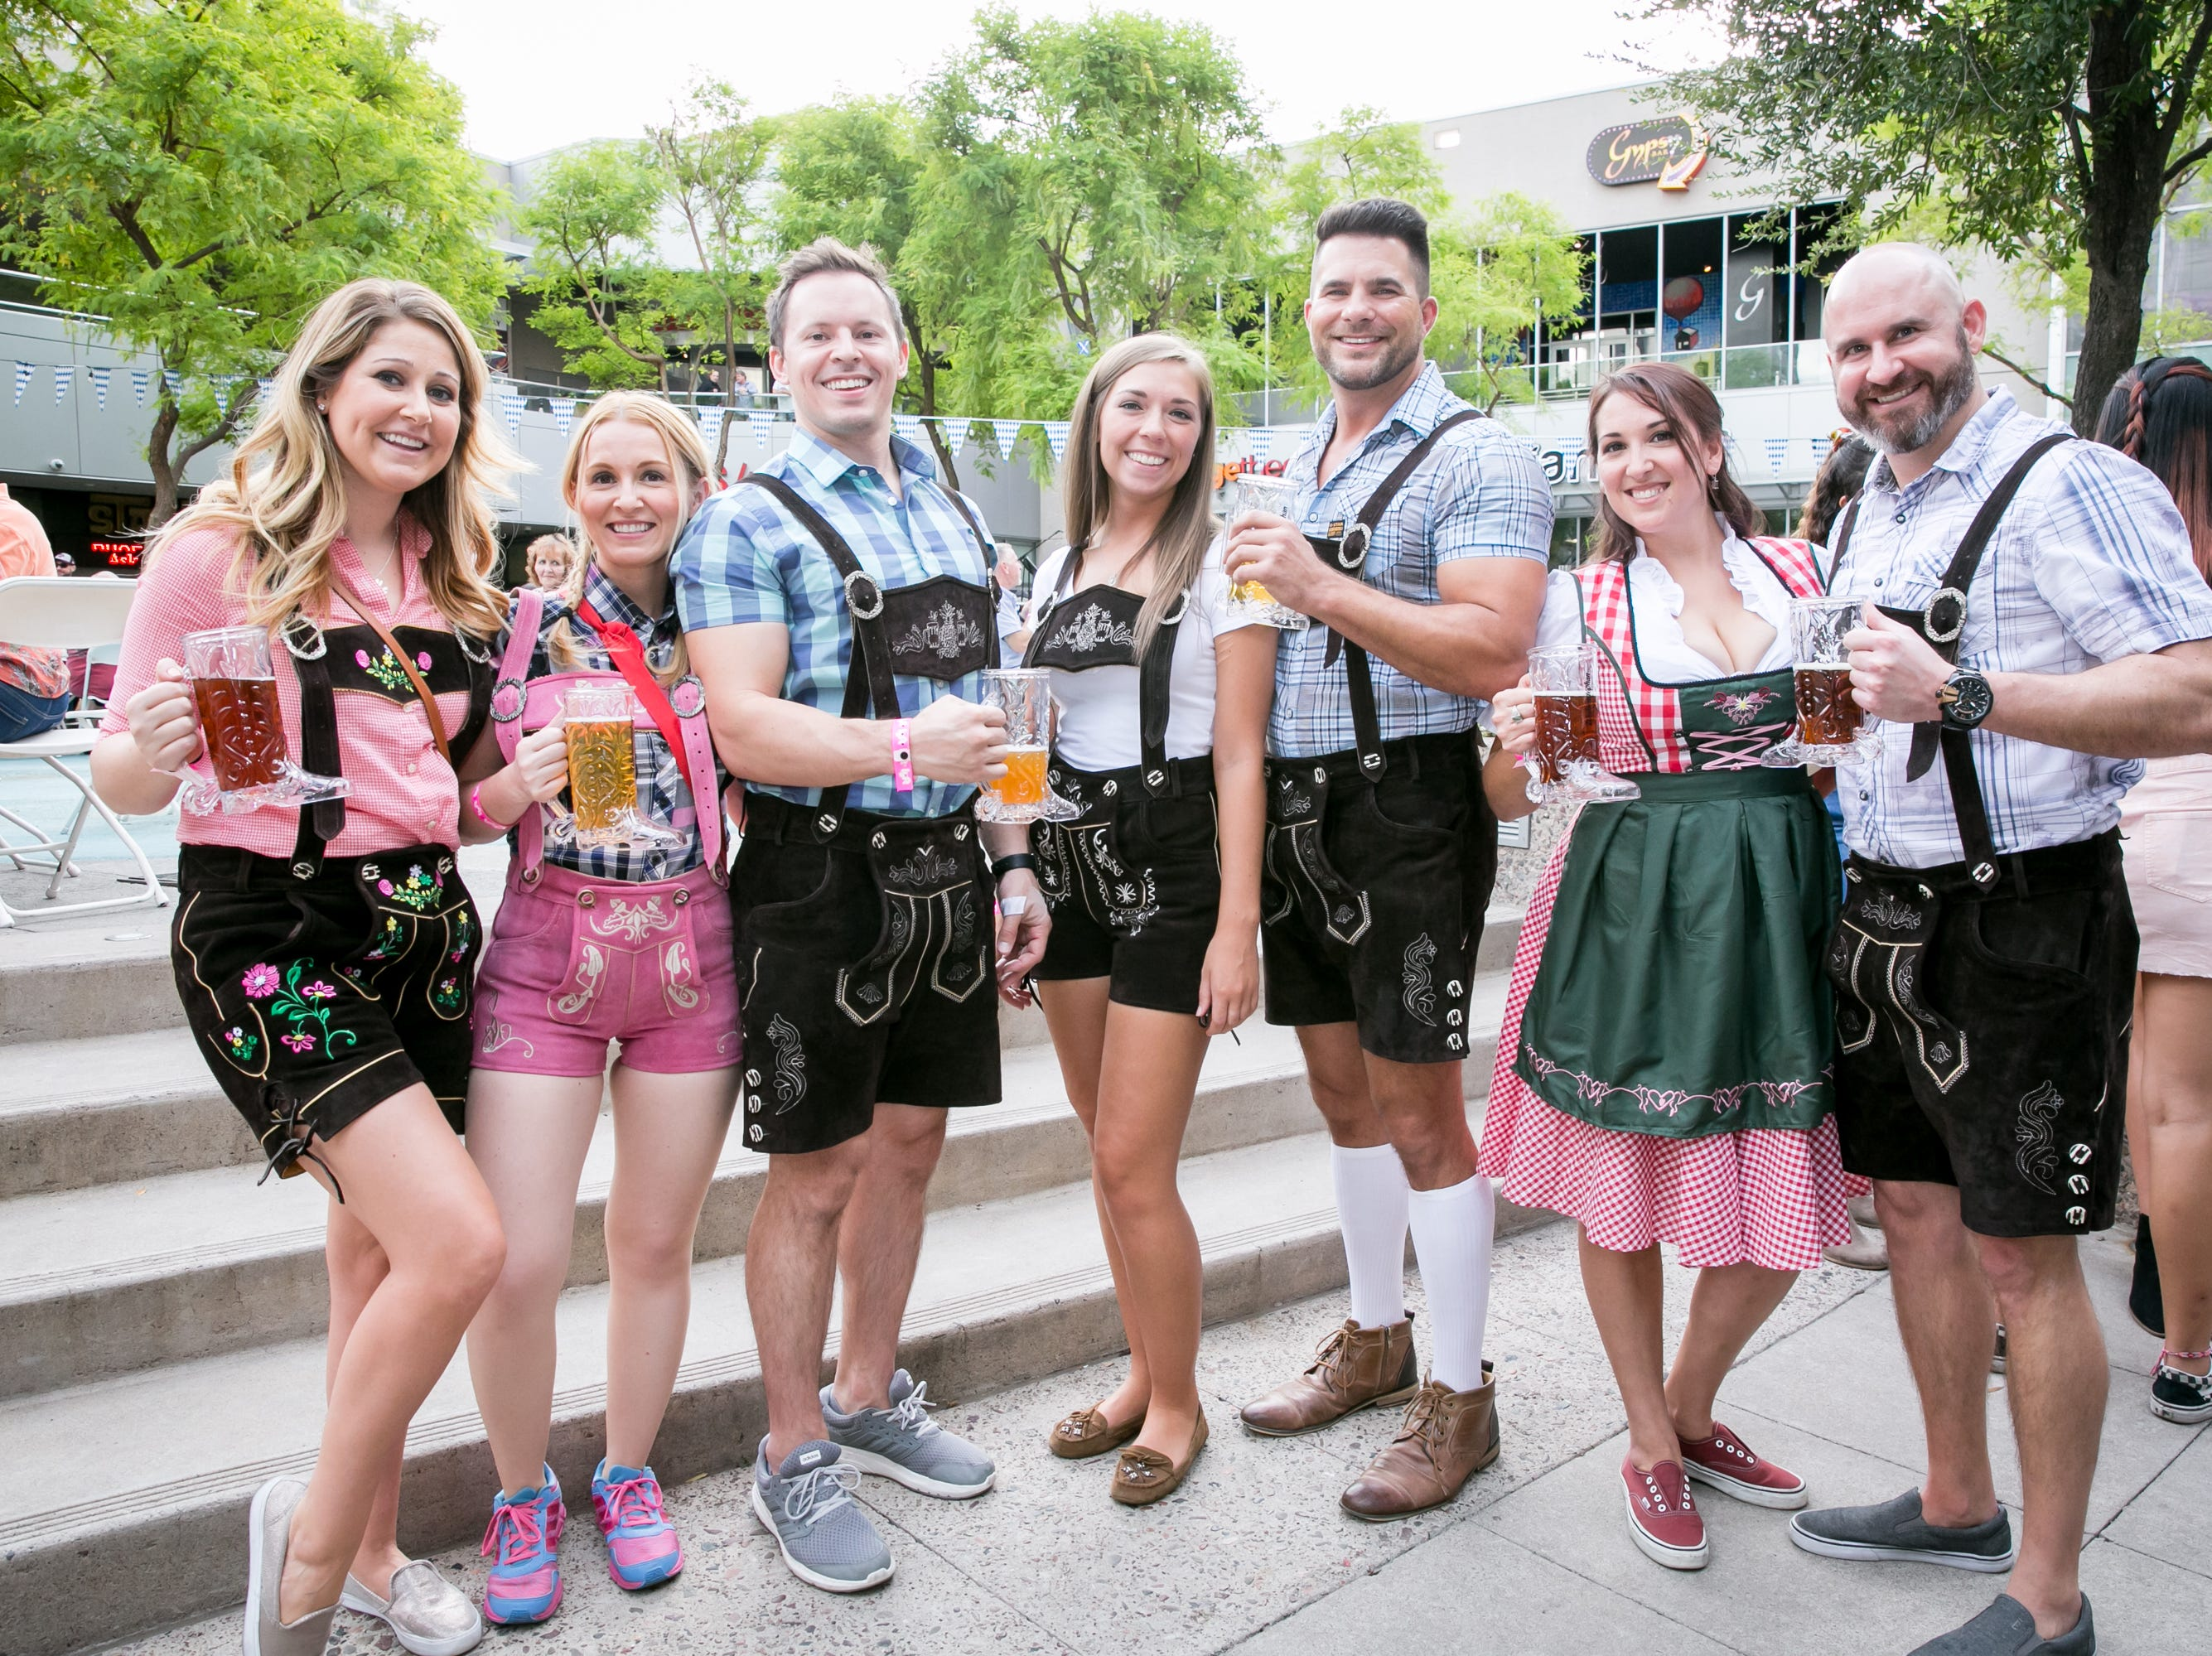 This group looked fantastic for Downtown Phoenix Oktoberfest at CityScape on Saturday, October 6, 2018.